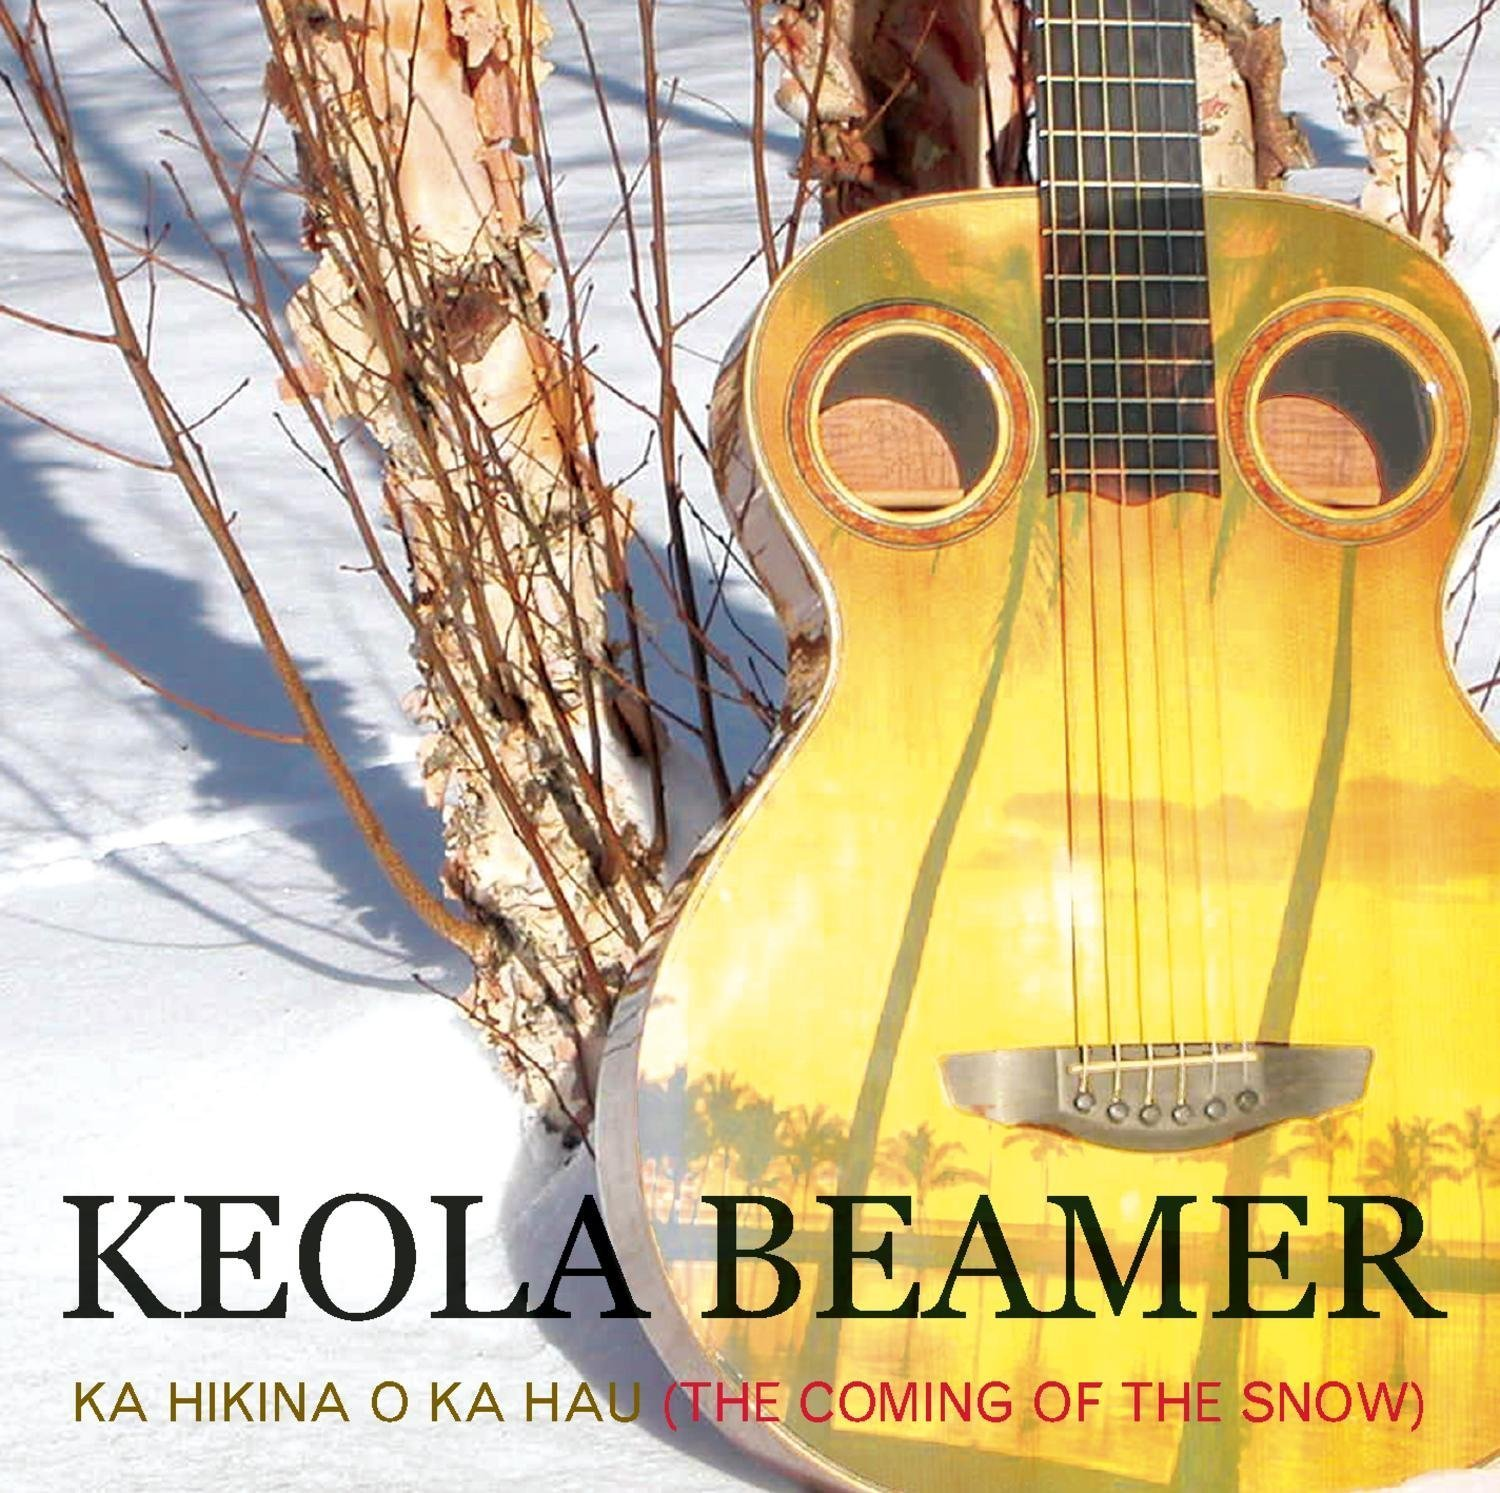 cd cover image of ka hikina o ka hau